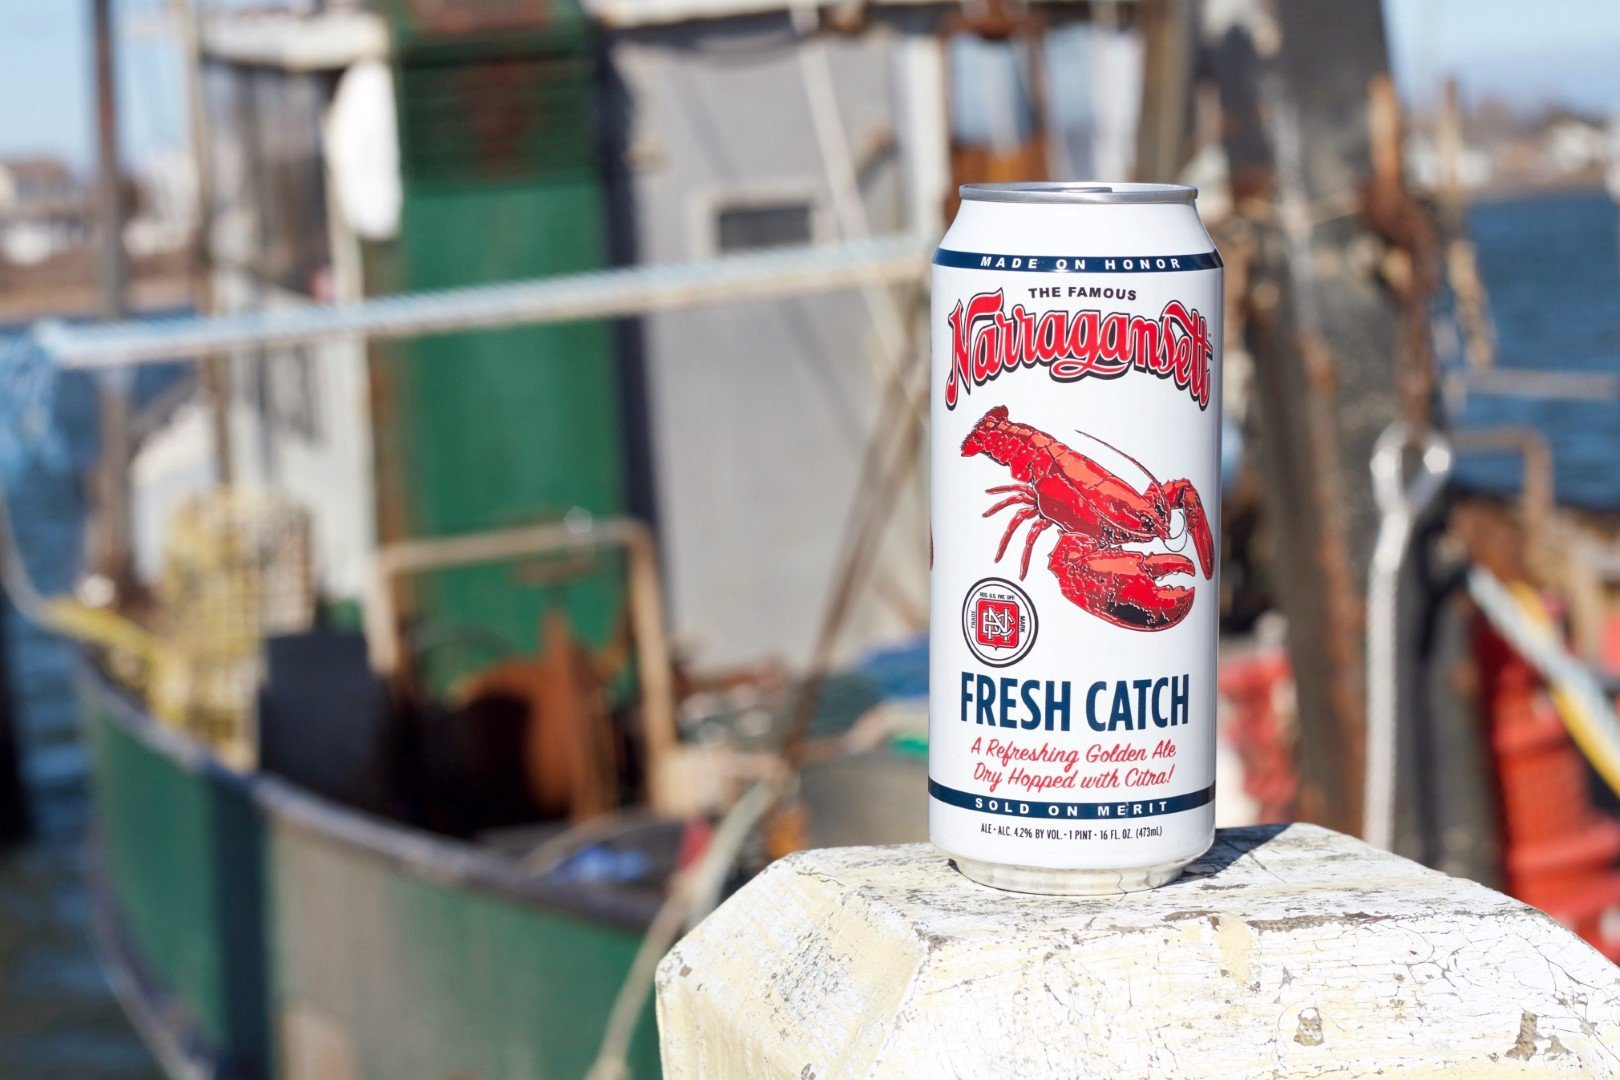 3. Narragansett Fresh Catch